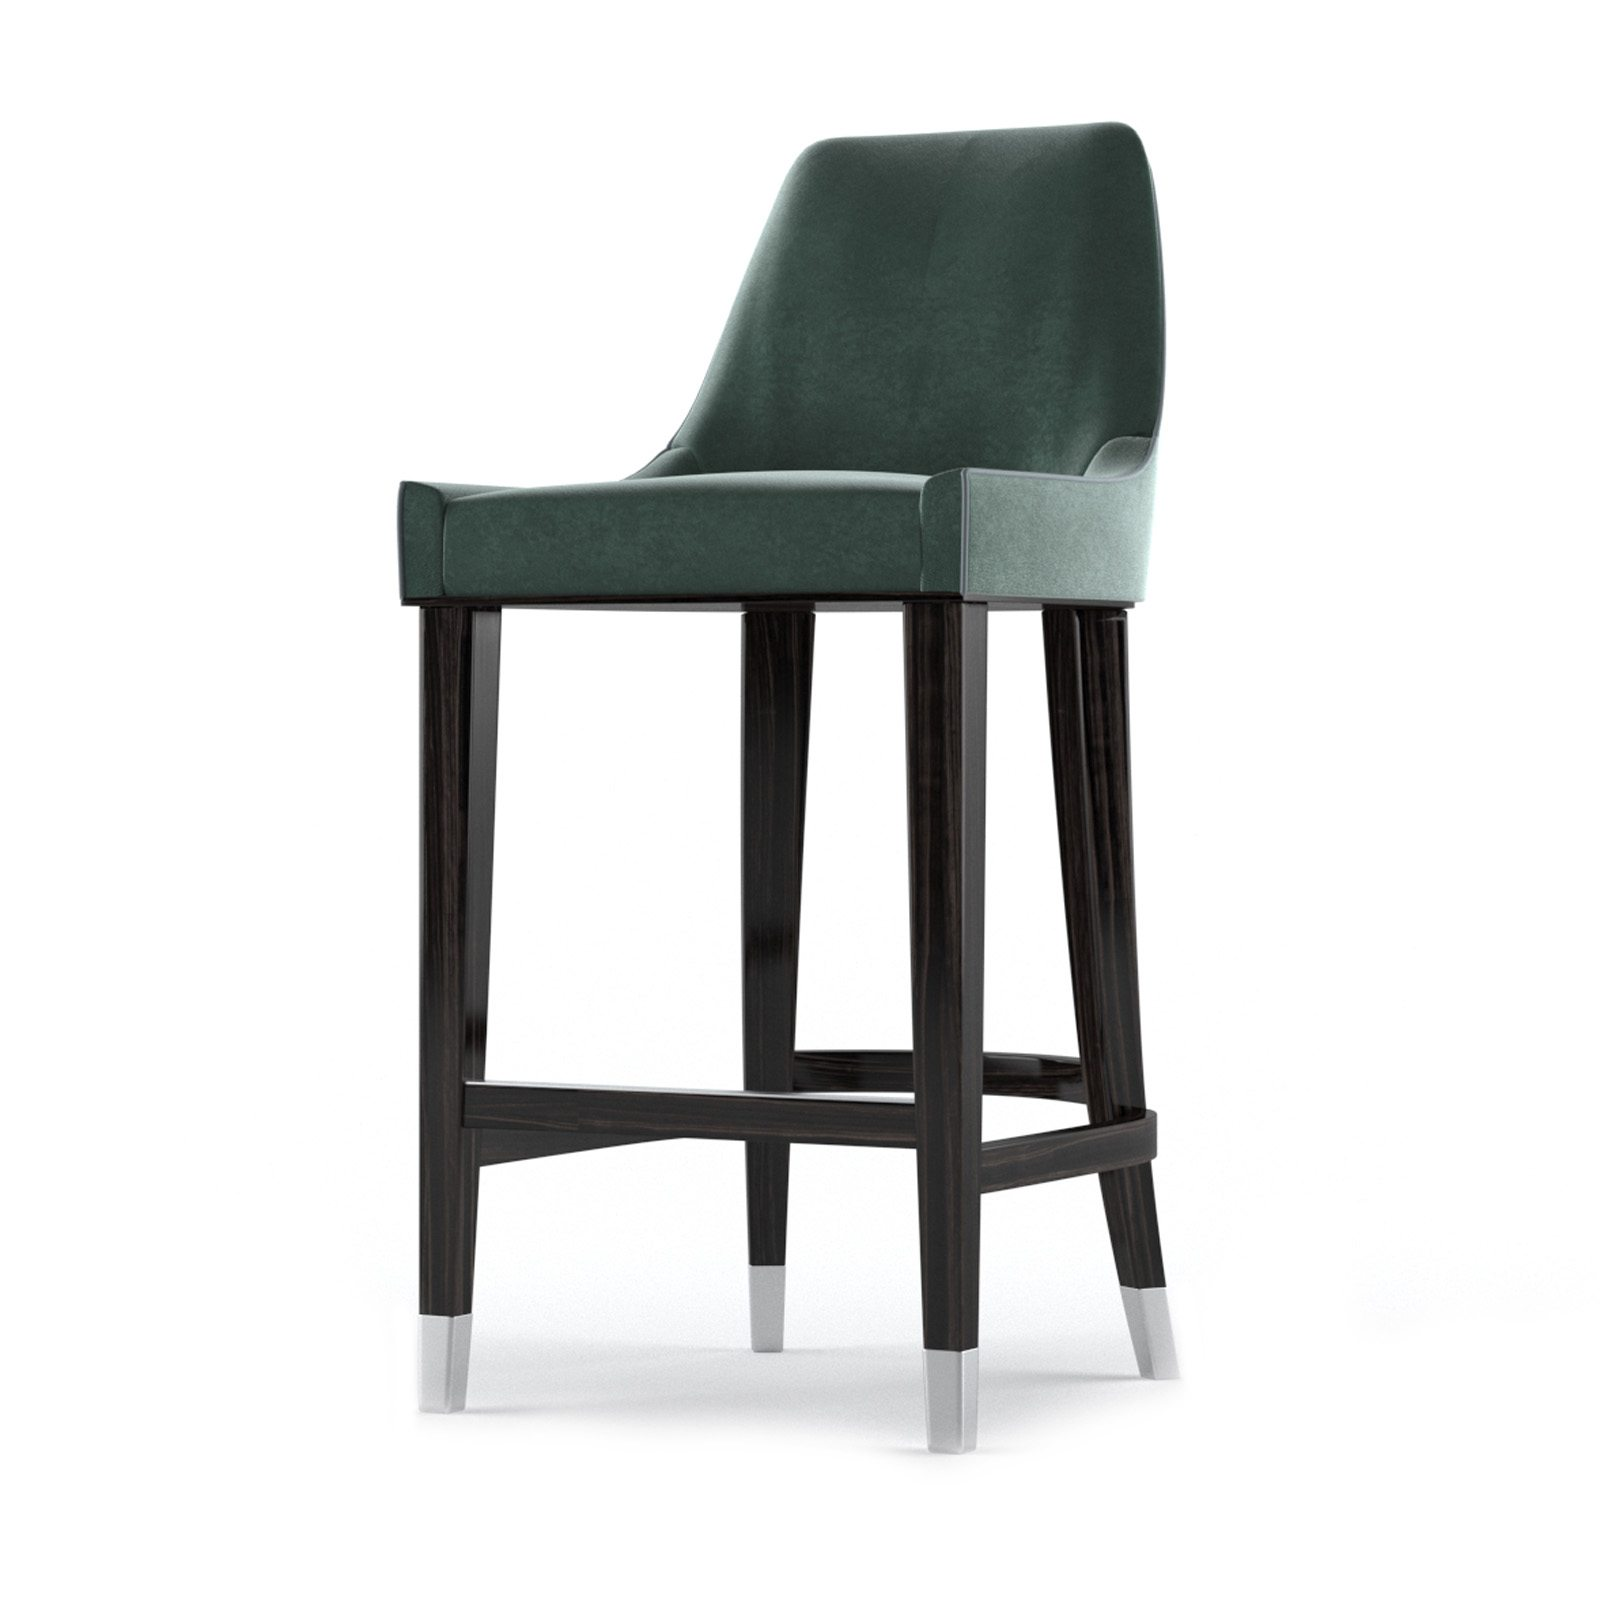 Balfour-Bar-Stool-by-Bonham-&-Bonham-03